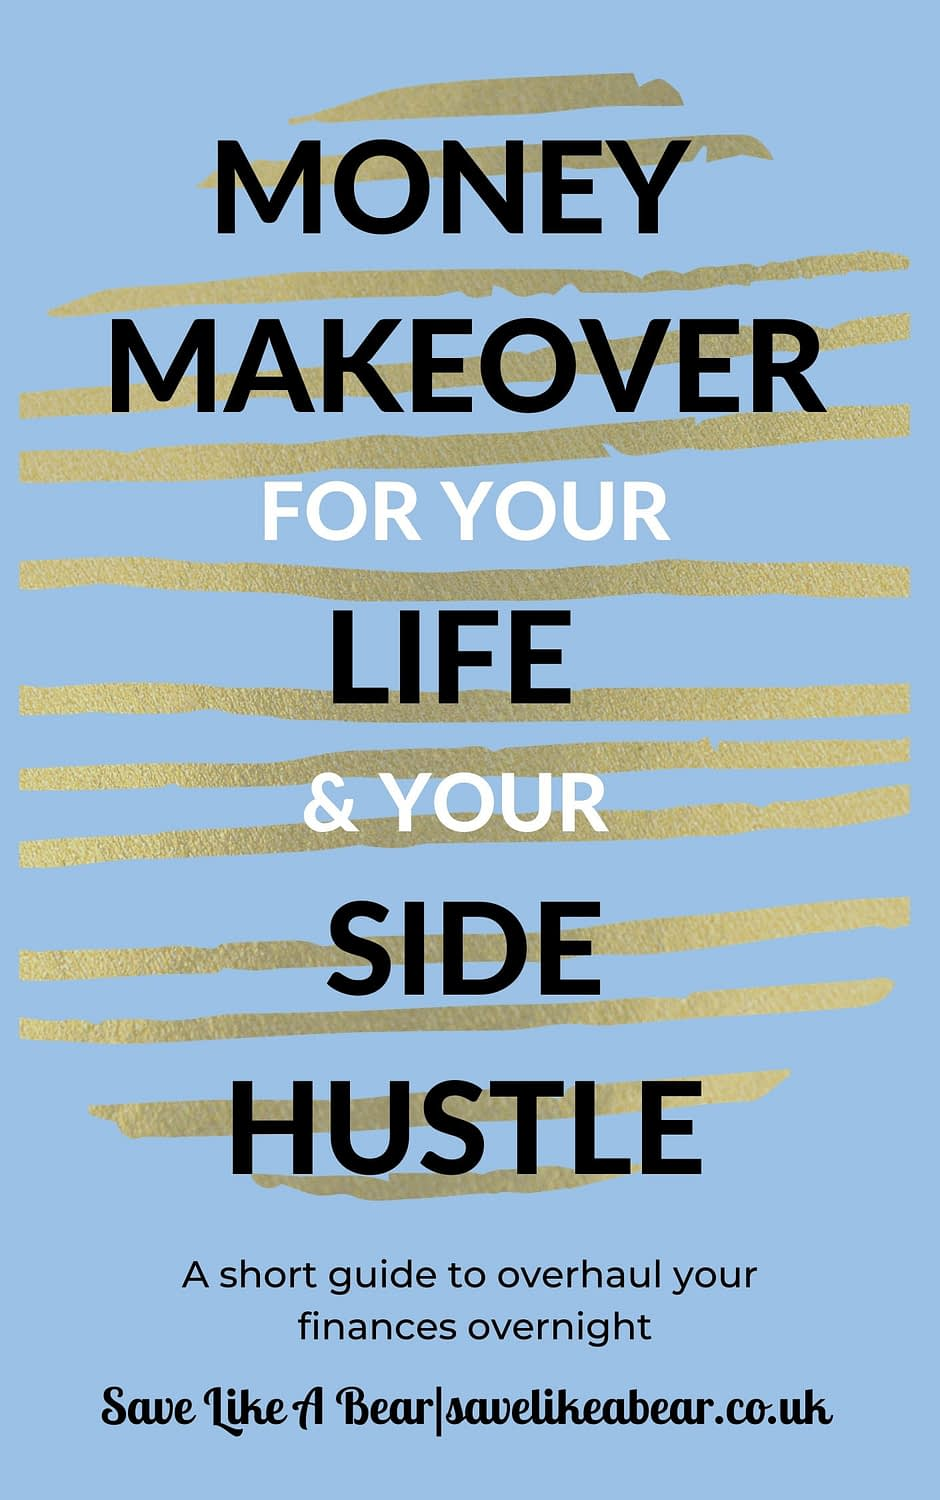 Blue book cover titled money makeover for your life & your side hustle by savelikeabear